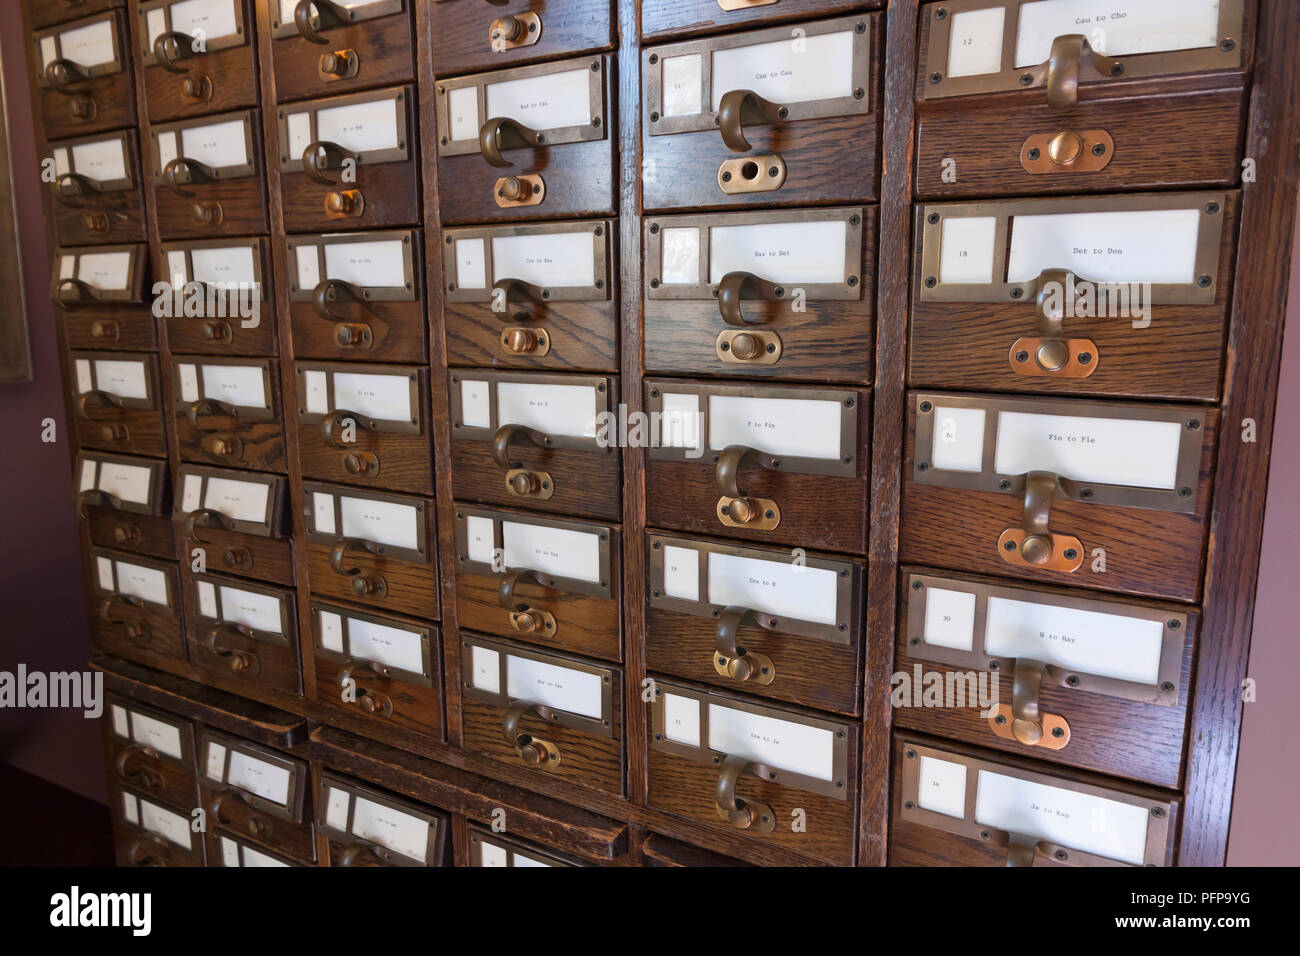 Library card catalog files. - Stock Image